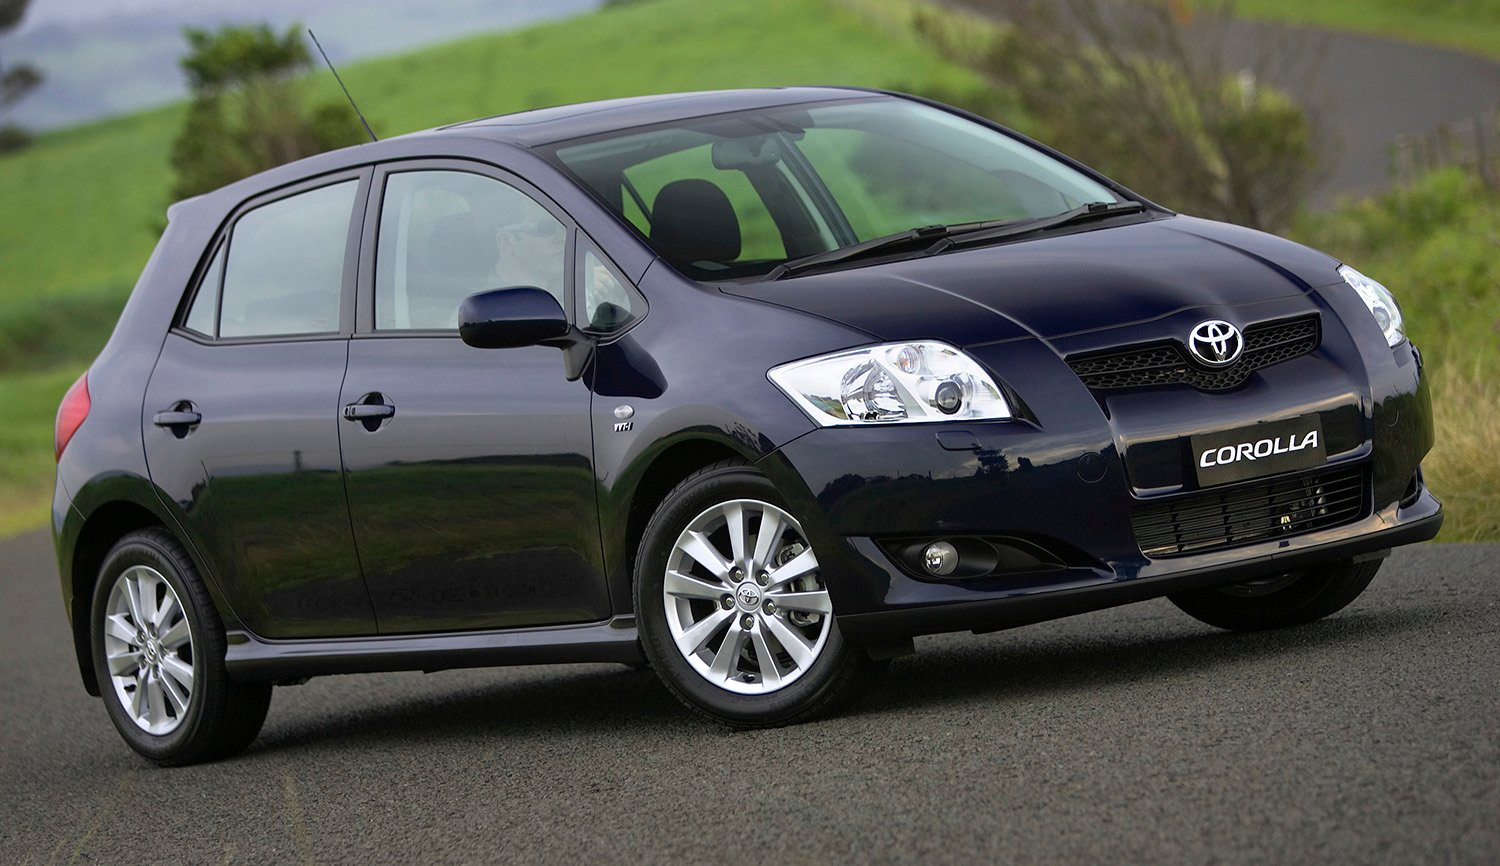 toyota corolla yaris avensis verso added to takata airbag recall 179 000 vehicles affected. Black Bedroom Furniture Sets. Home Design Ideas